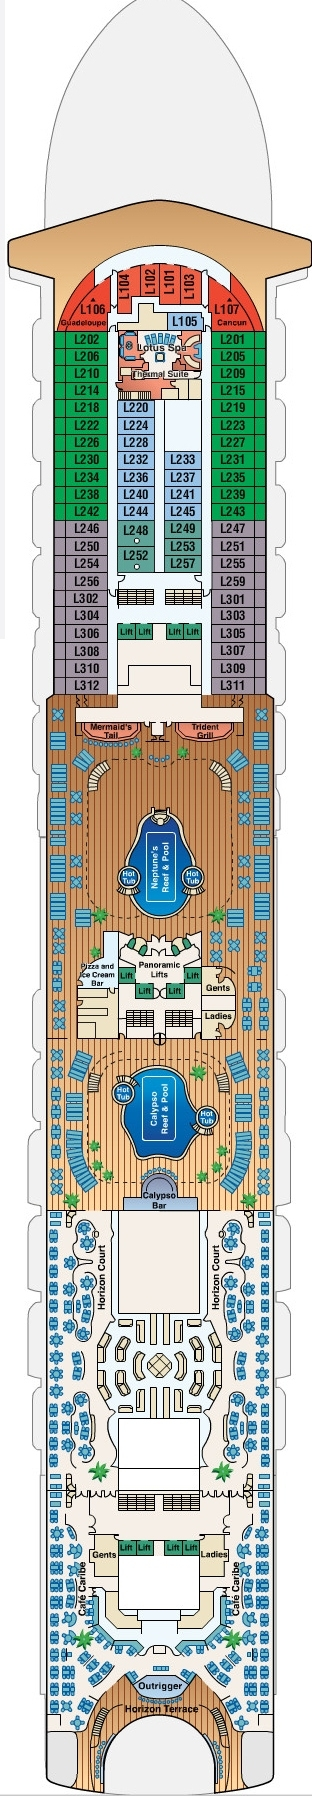 Ruby Princess Lido Deck 15 layout